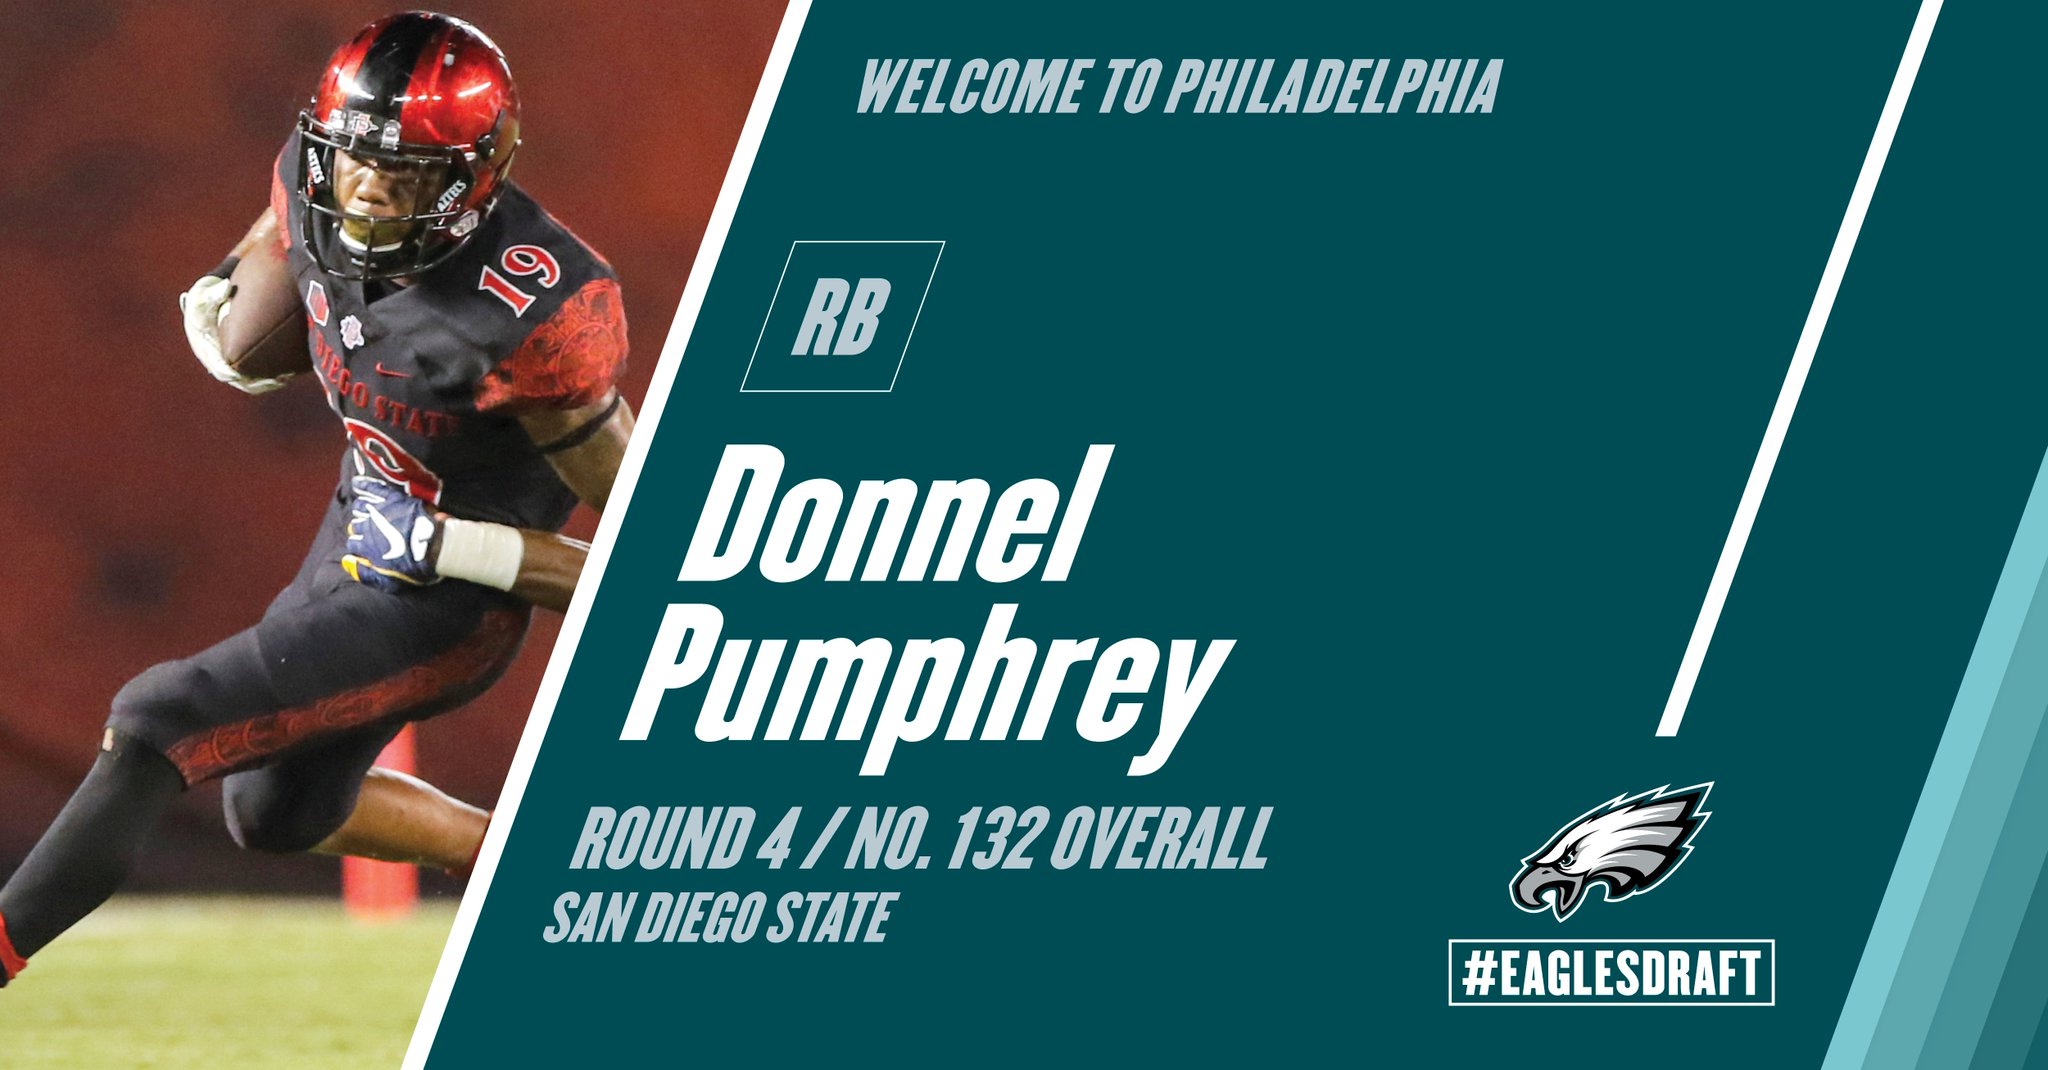 With the 132nd pick in the 2017 #NFLDraft, the #Eagles select RB Donnel Pumphrey. #FlyEaglesFly https://t.co/wYVRRpAqDj